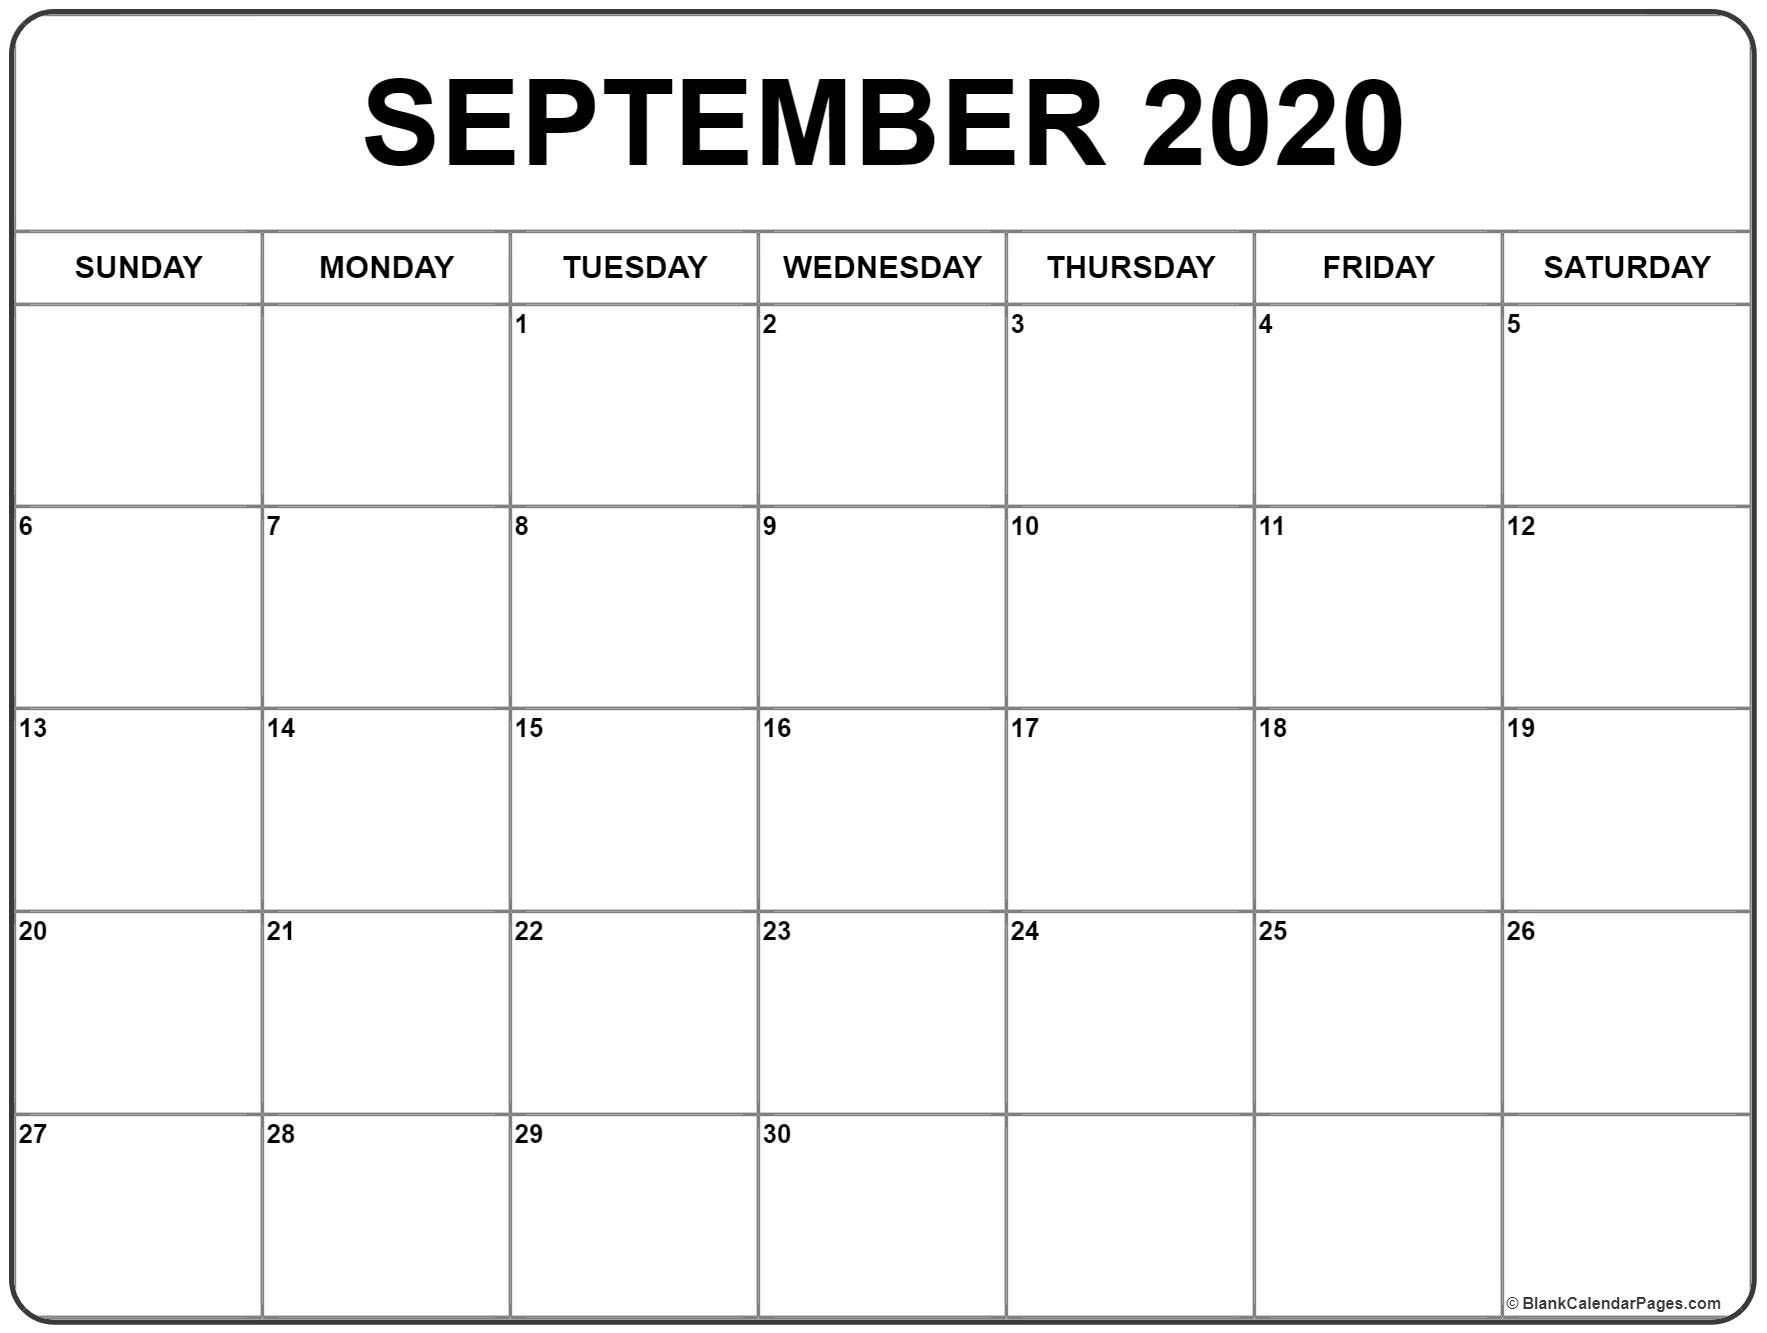 September 2020 Calendar 51 Calendar Templates Of 2020  Full Page September 2020 Calender Page